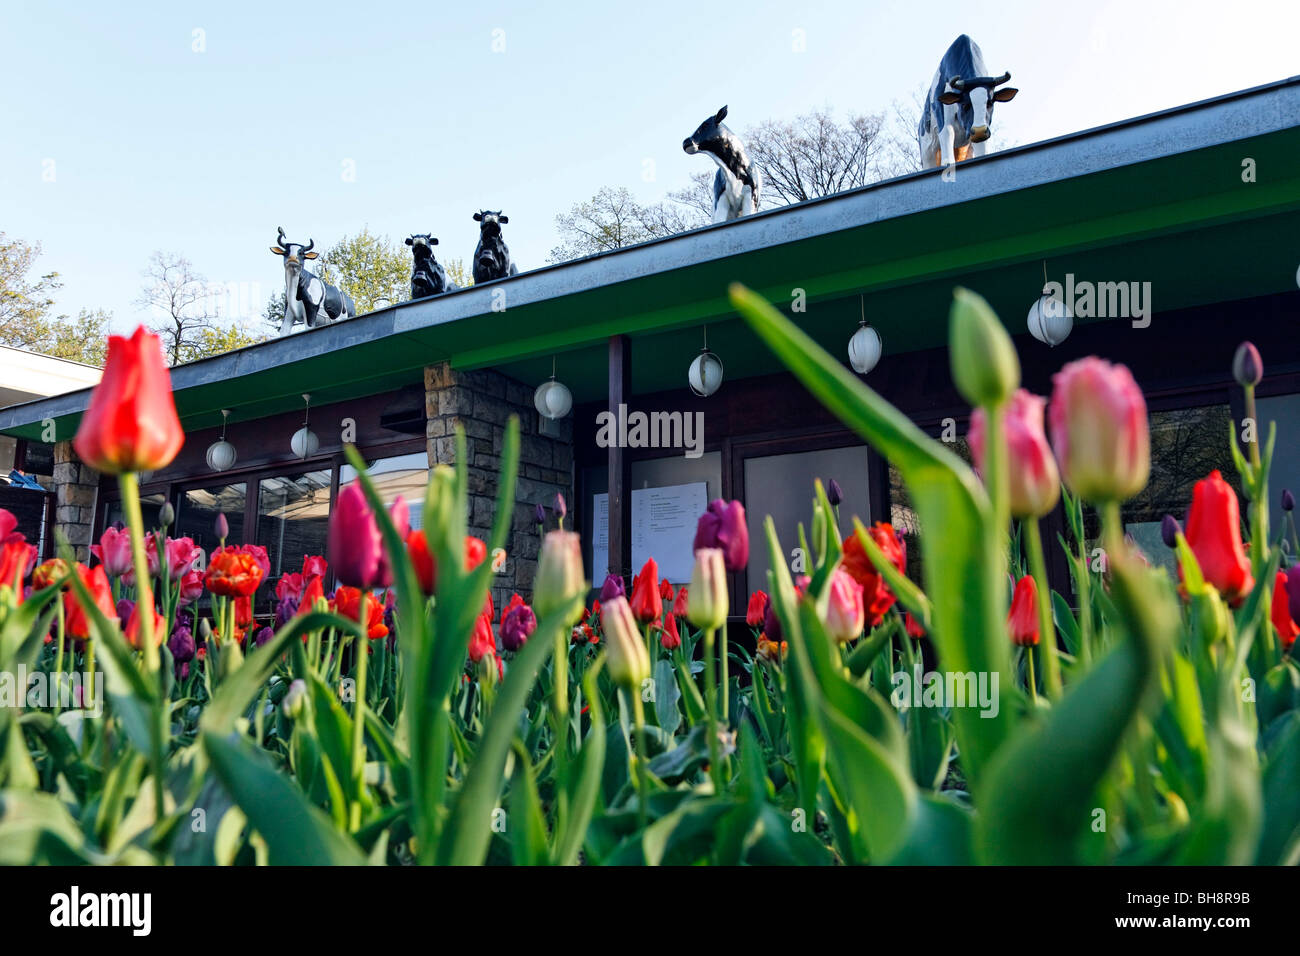 CowParade on the roof of Cafe Schoenbrunn, Friedrichshain Public Park, Berlin, Germany - Stock Image